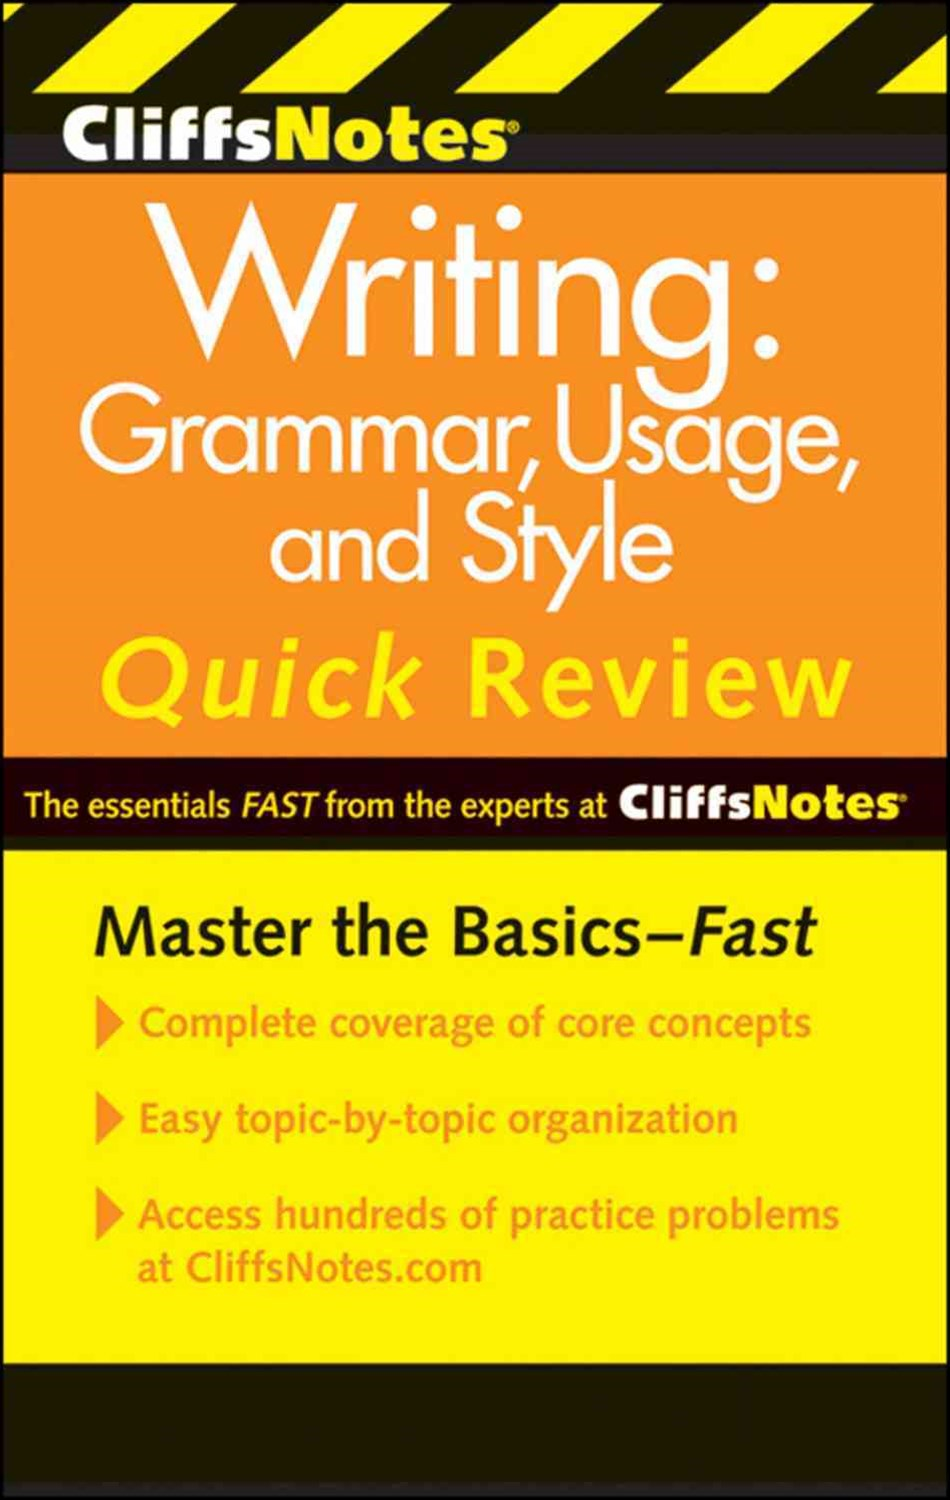 CliffsNotes Writing: Grammar, Usage, and Style Quick Review: 3rd Edition